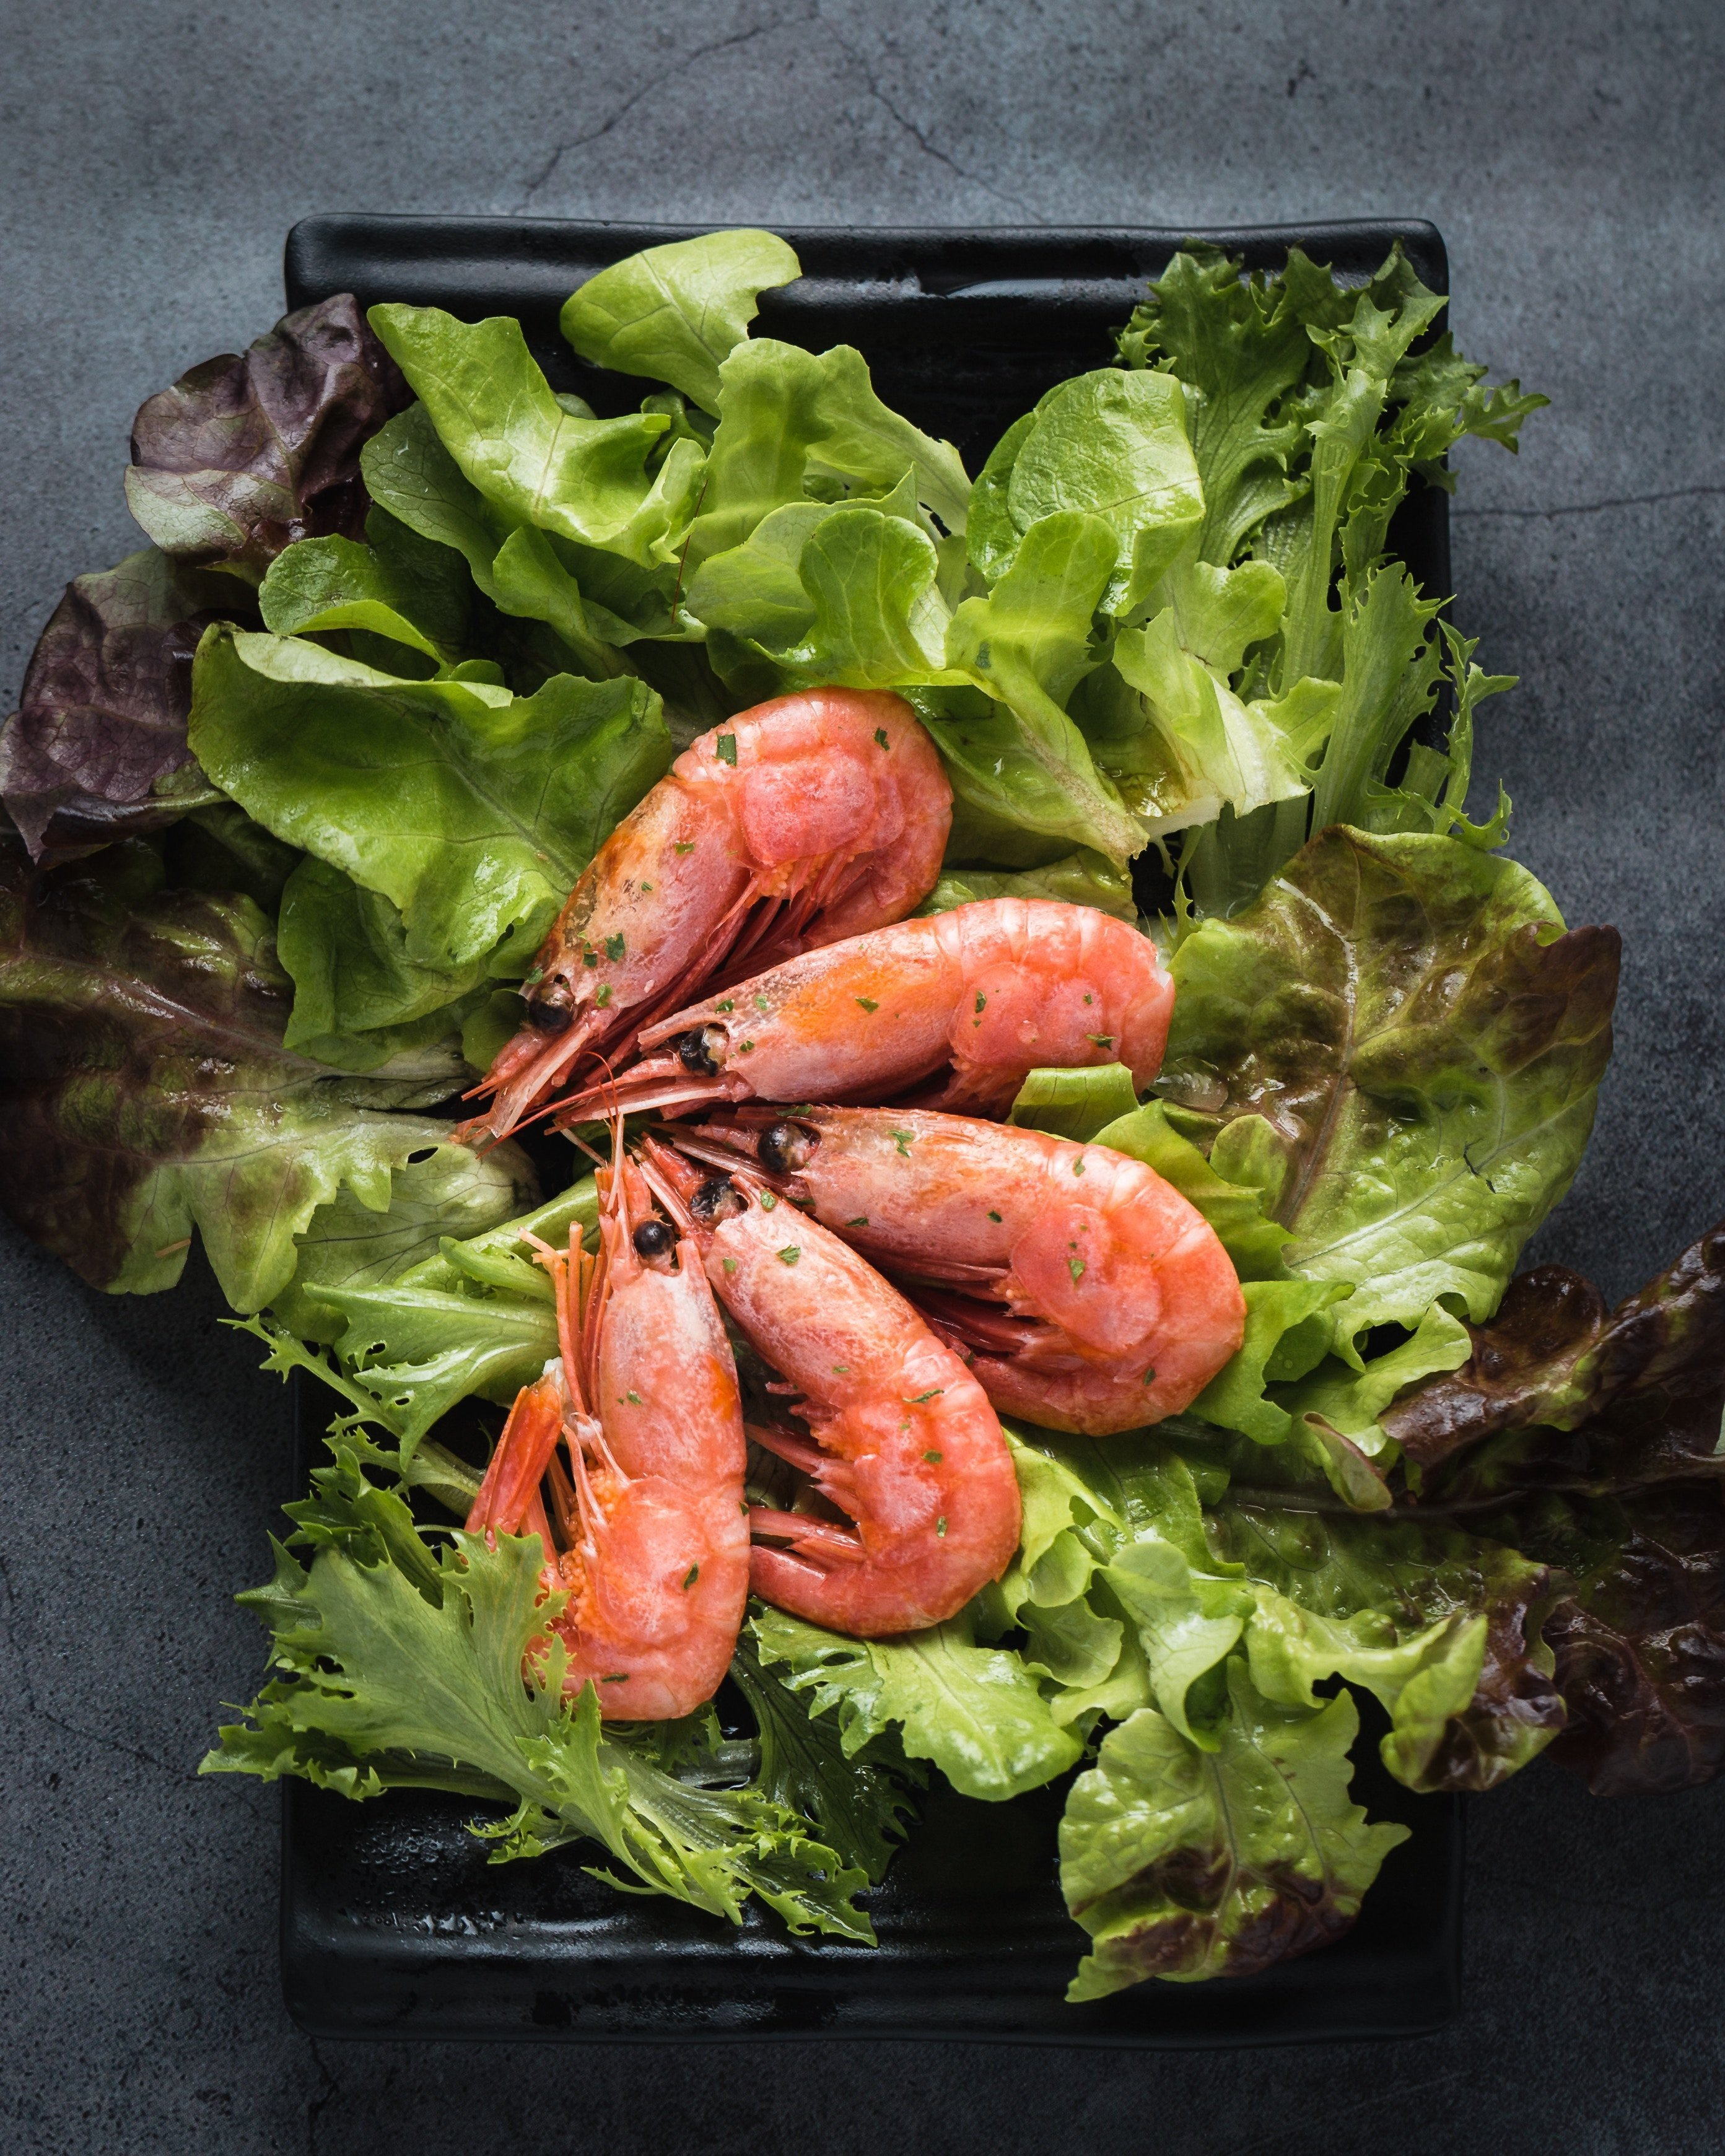 King prawns with green lettuce